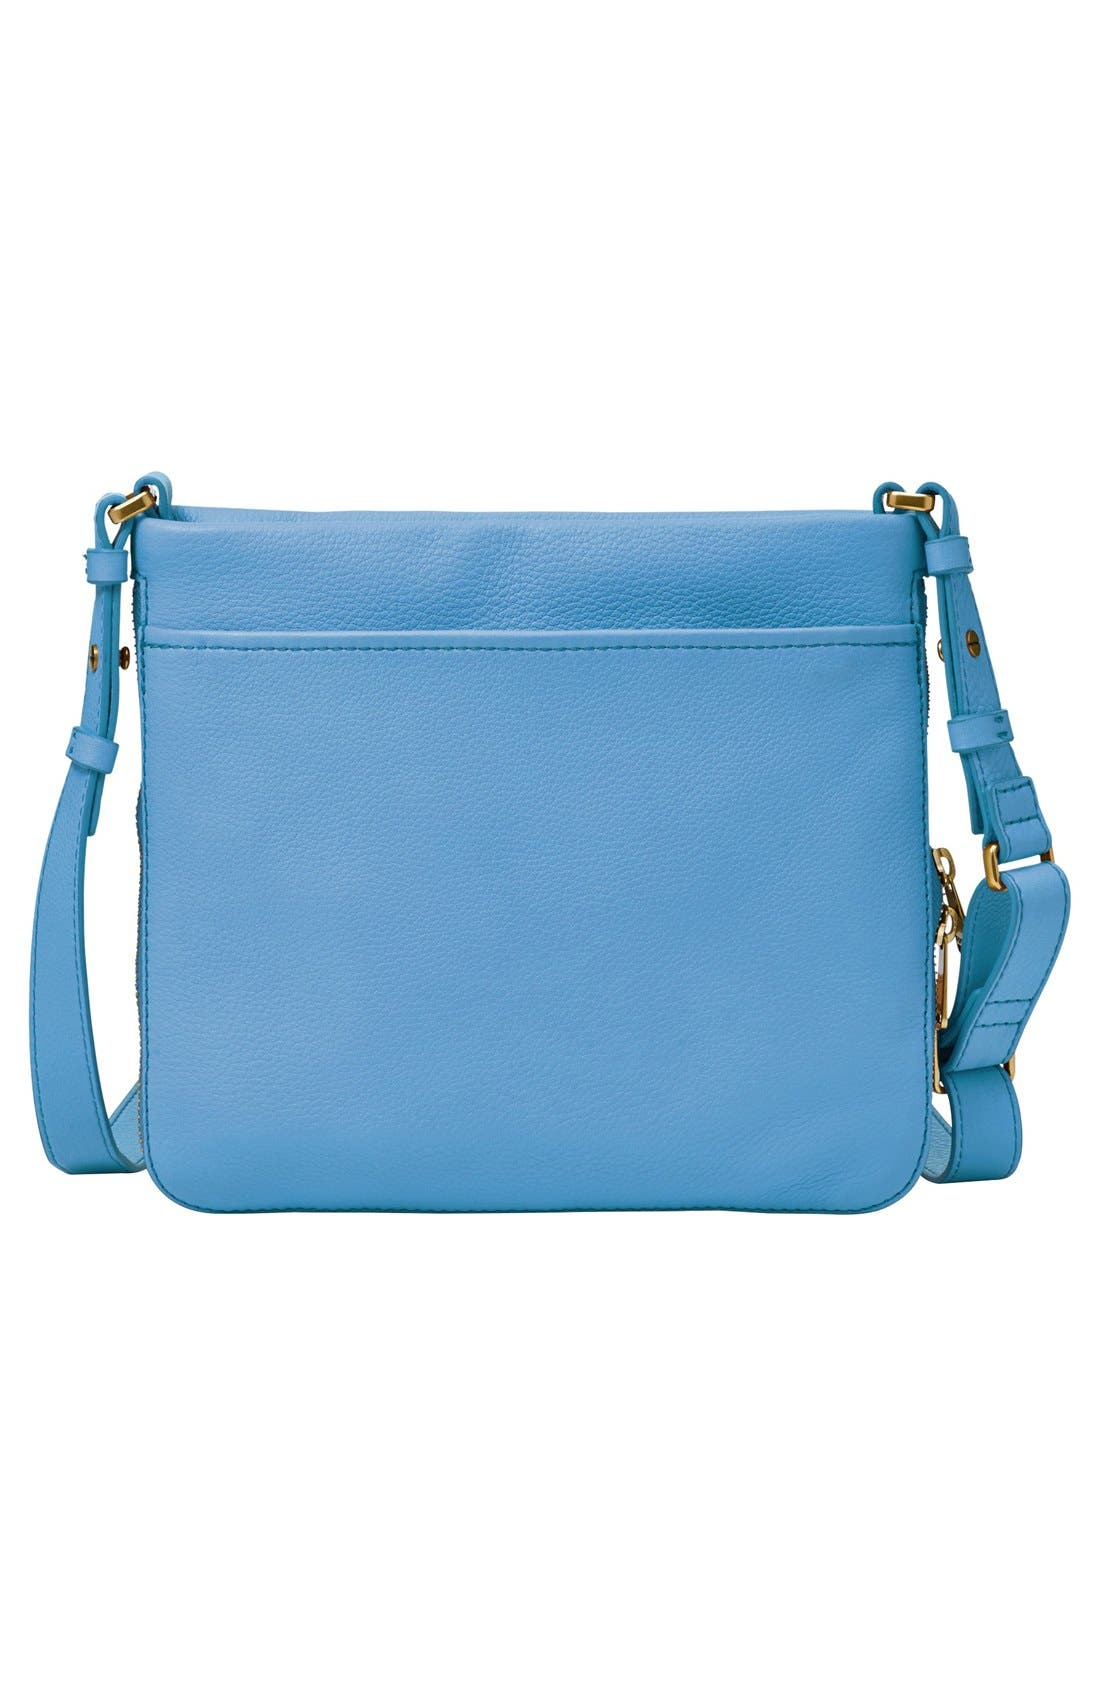 Alternate Image 3  - Fossil 'Preston' Crossbody Bag